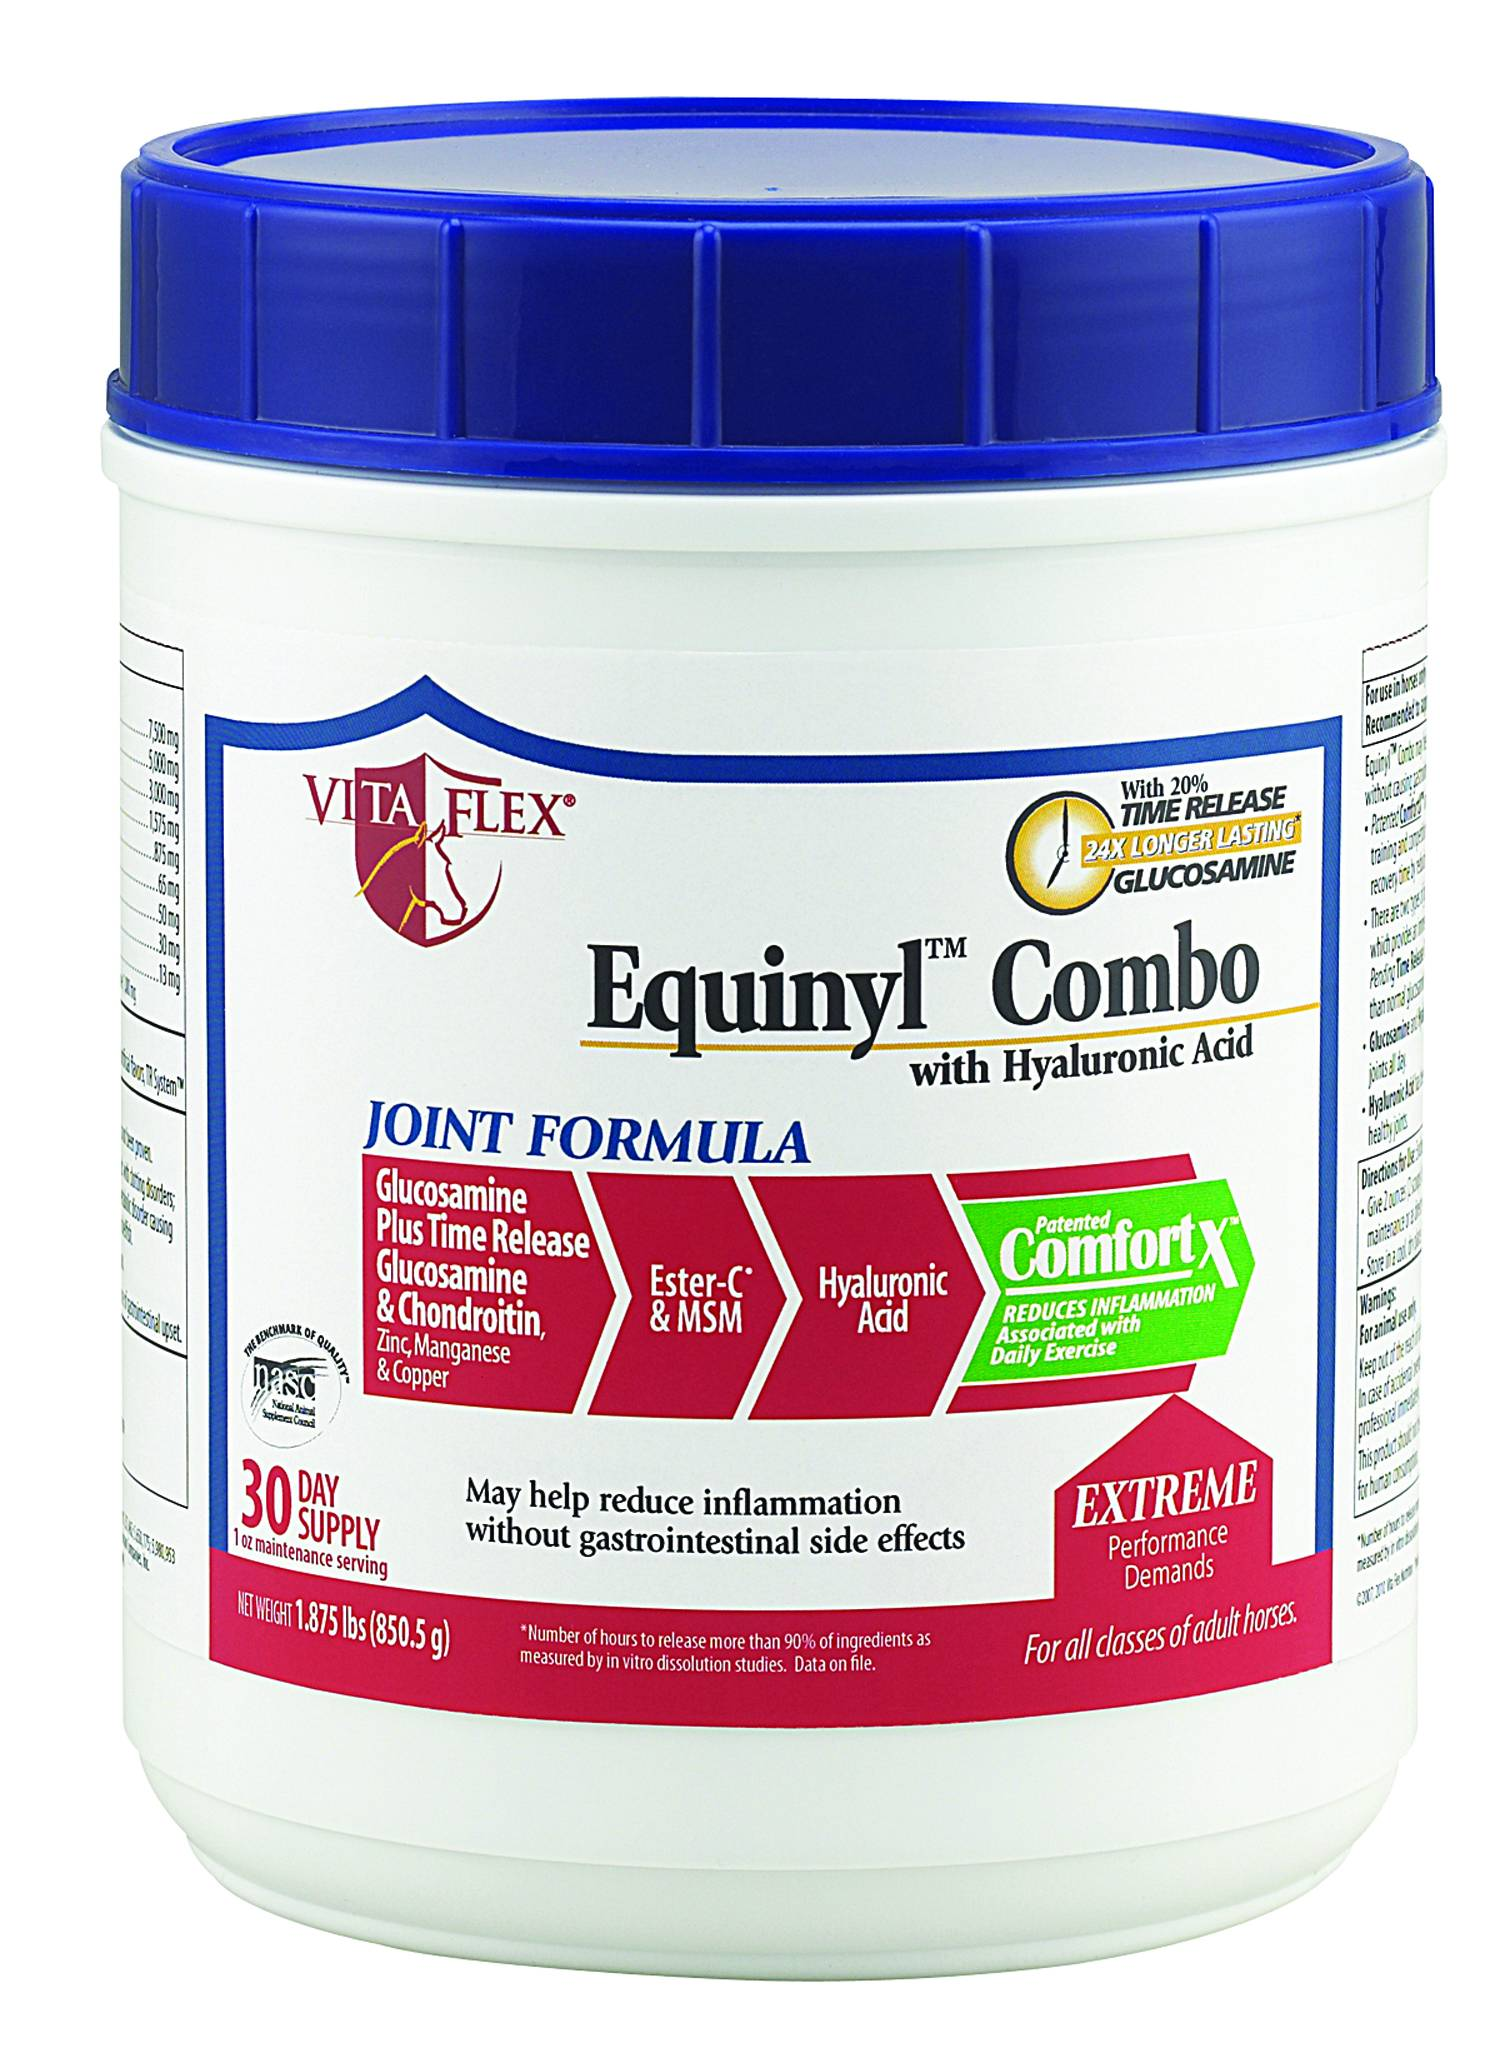 Vita Flex by Farnam Equinyl Combo with Hyaluronic Acid